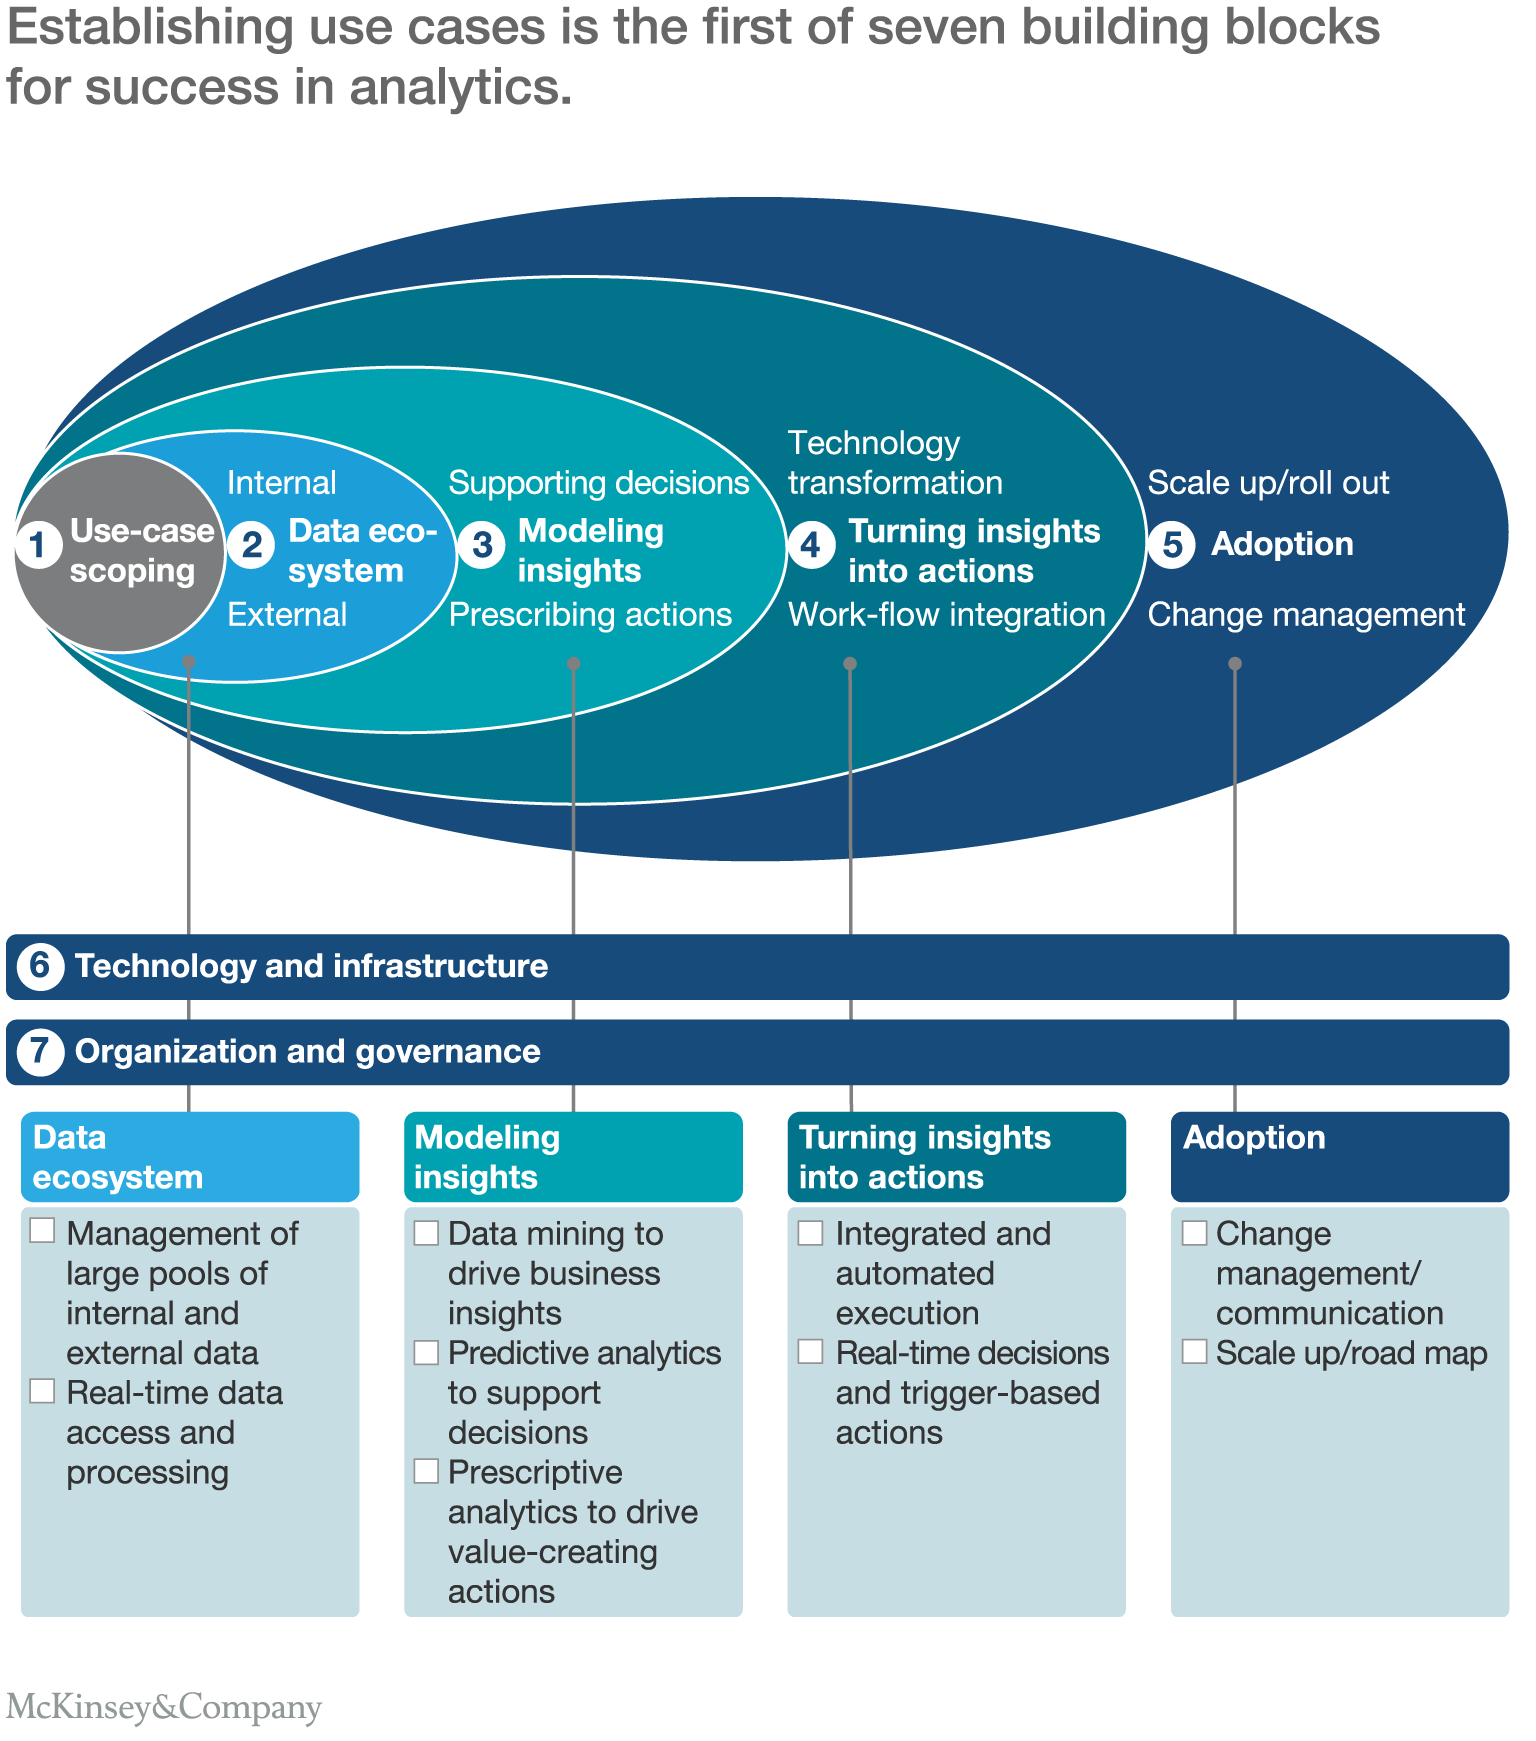 McKinsey & Company In 2019